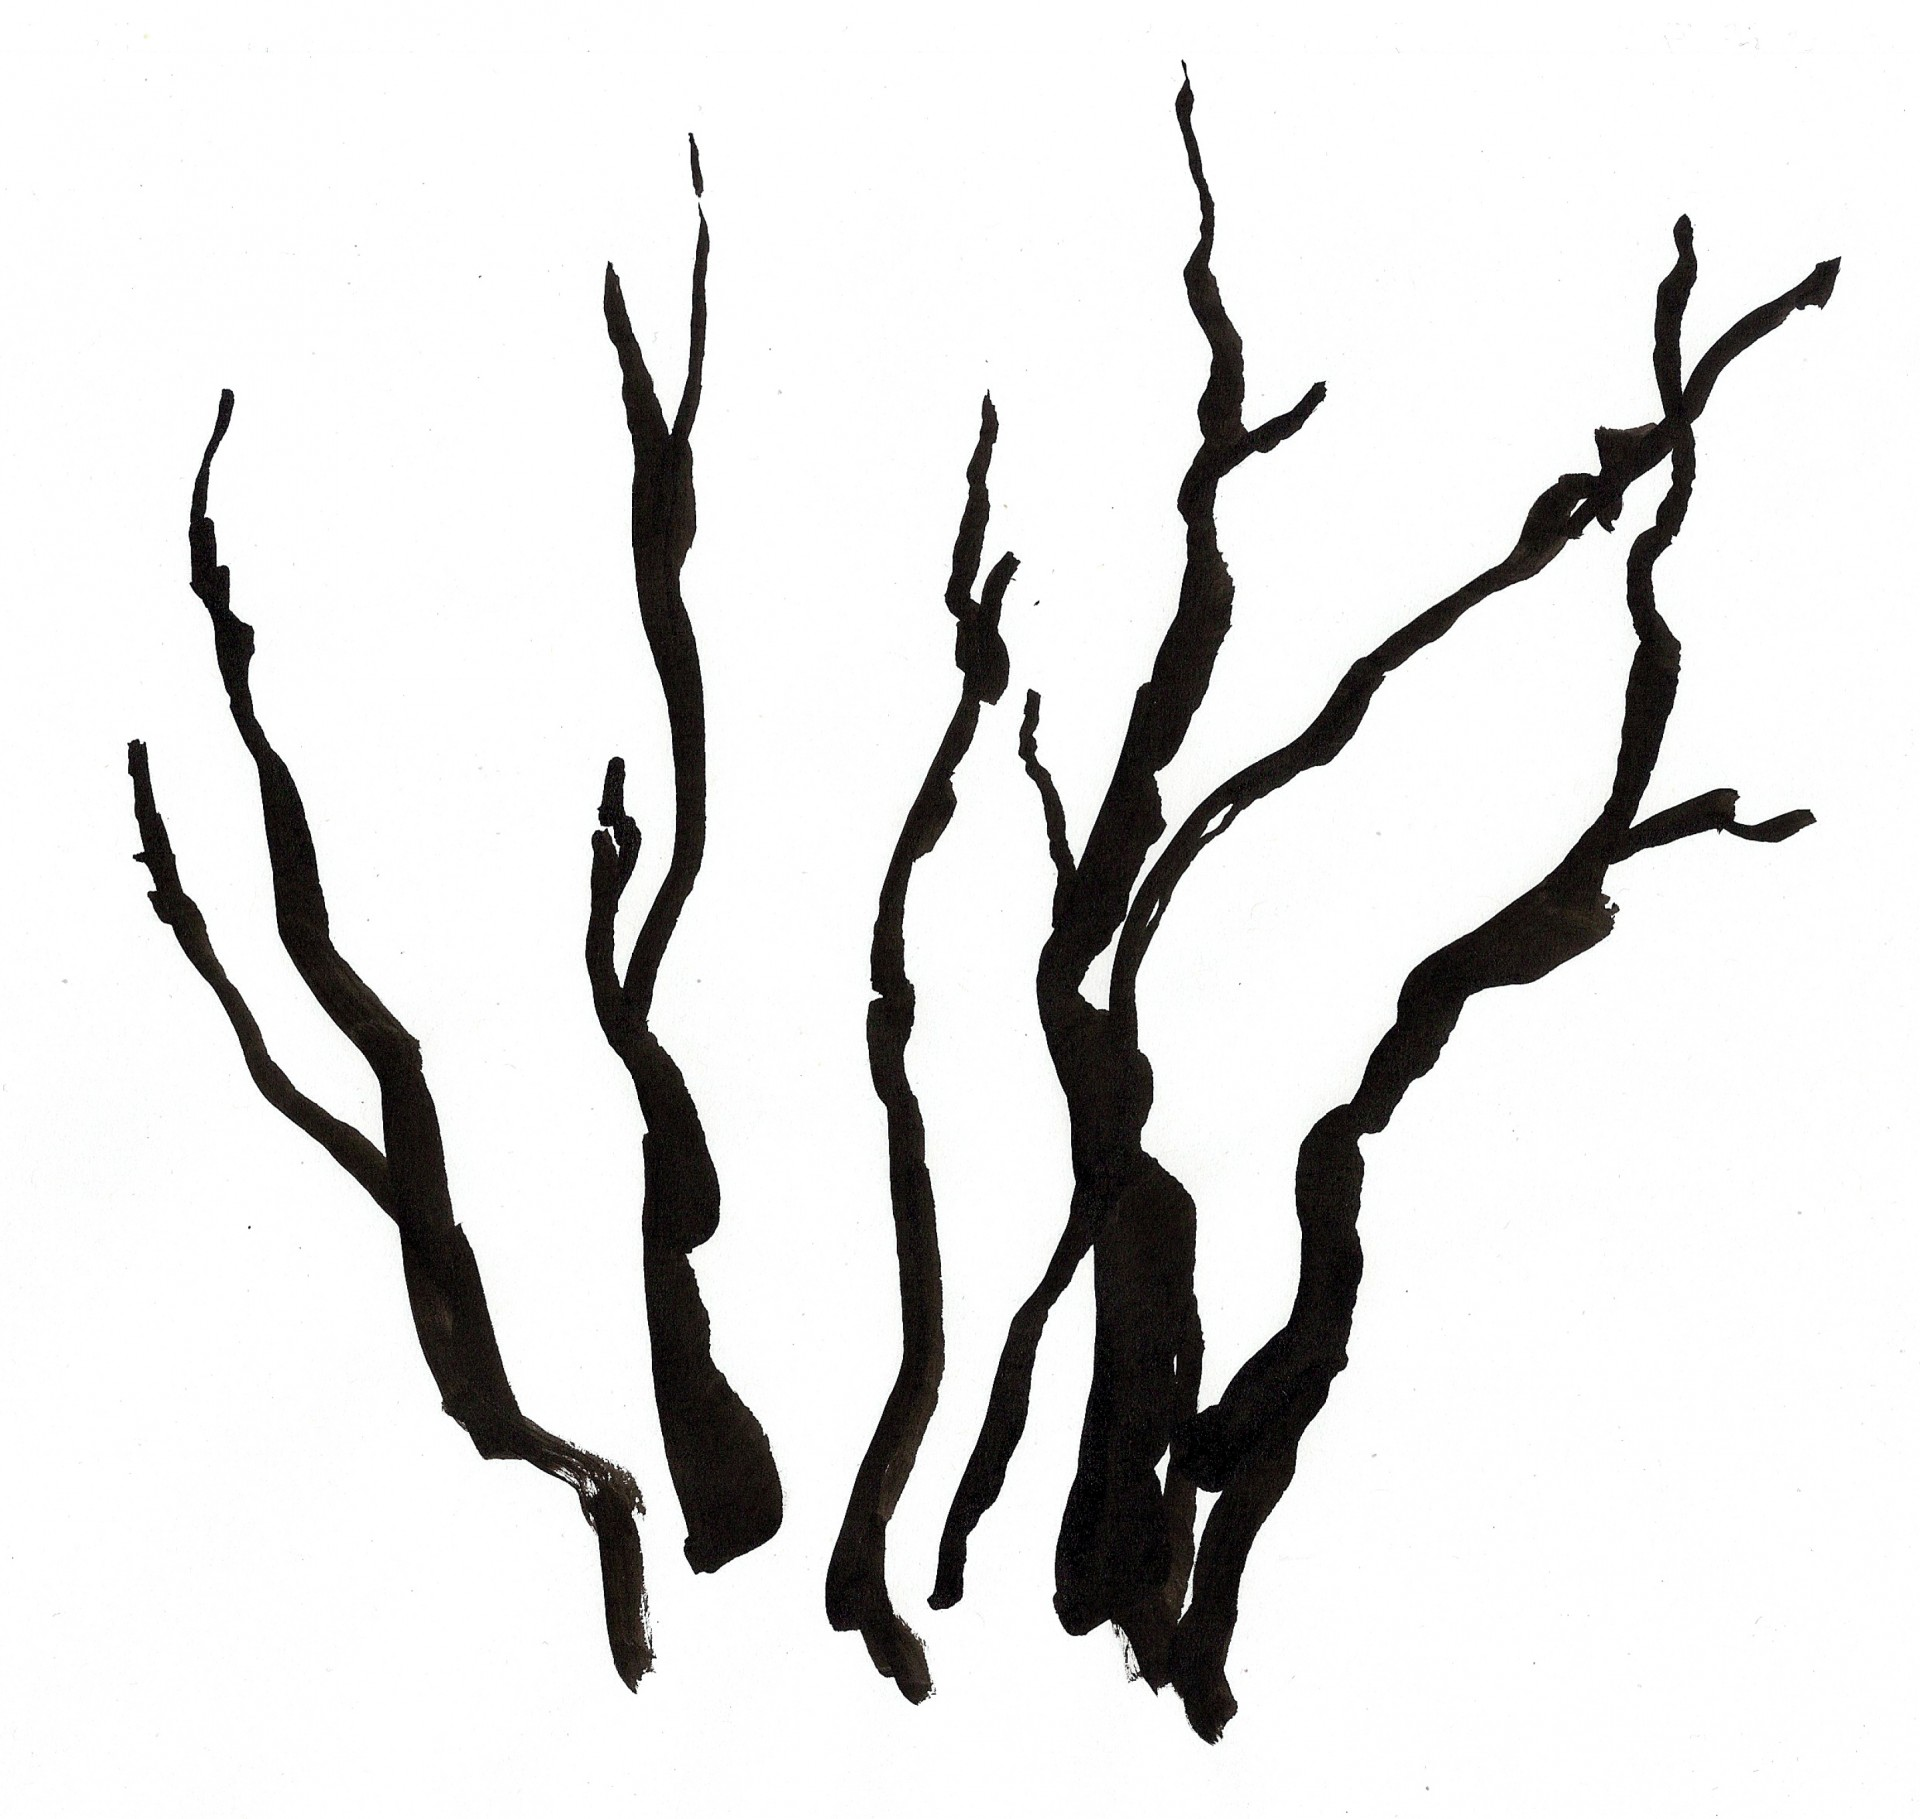 Jessica Minn Tree skeletons | Illustration